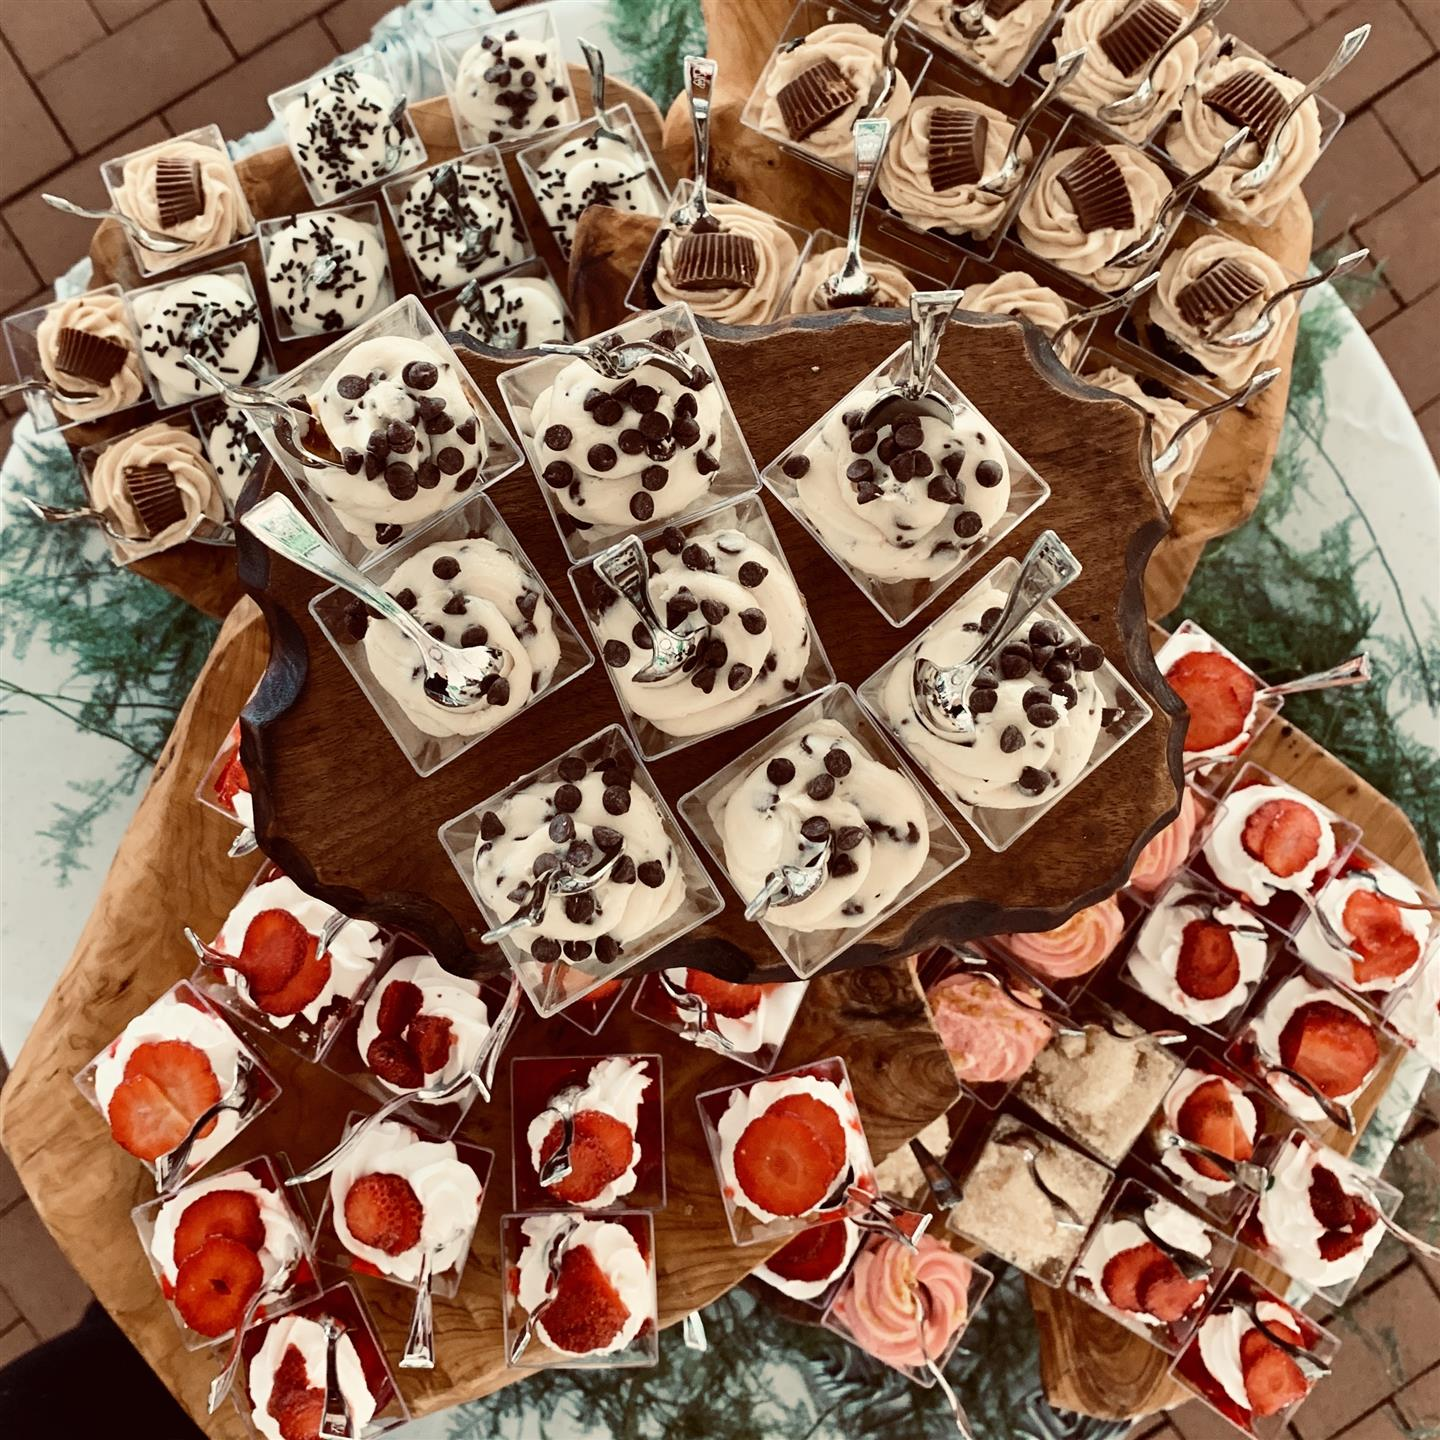 various cake shooters including strawberry and reeces